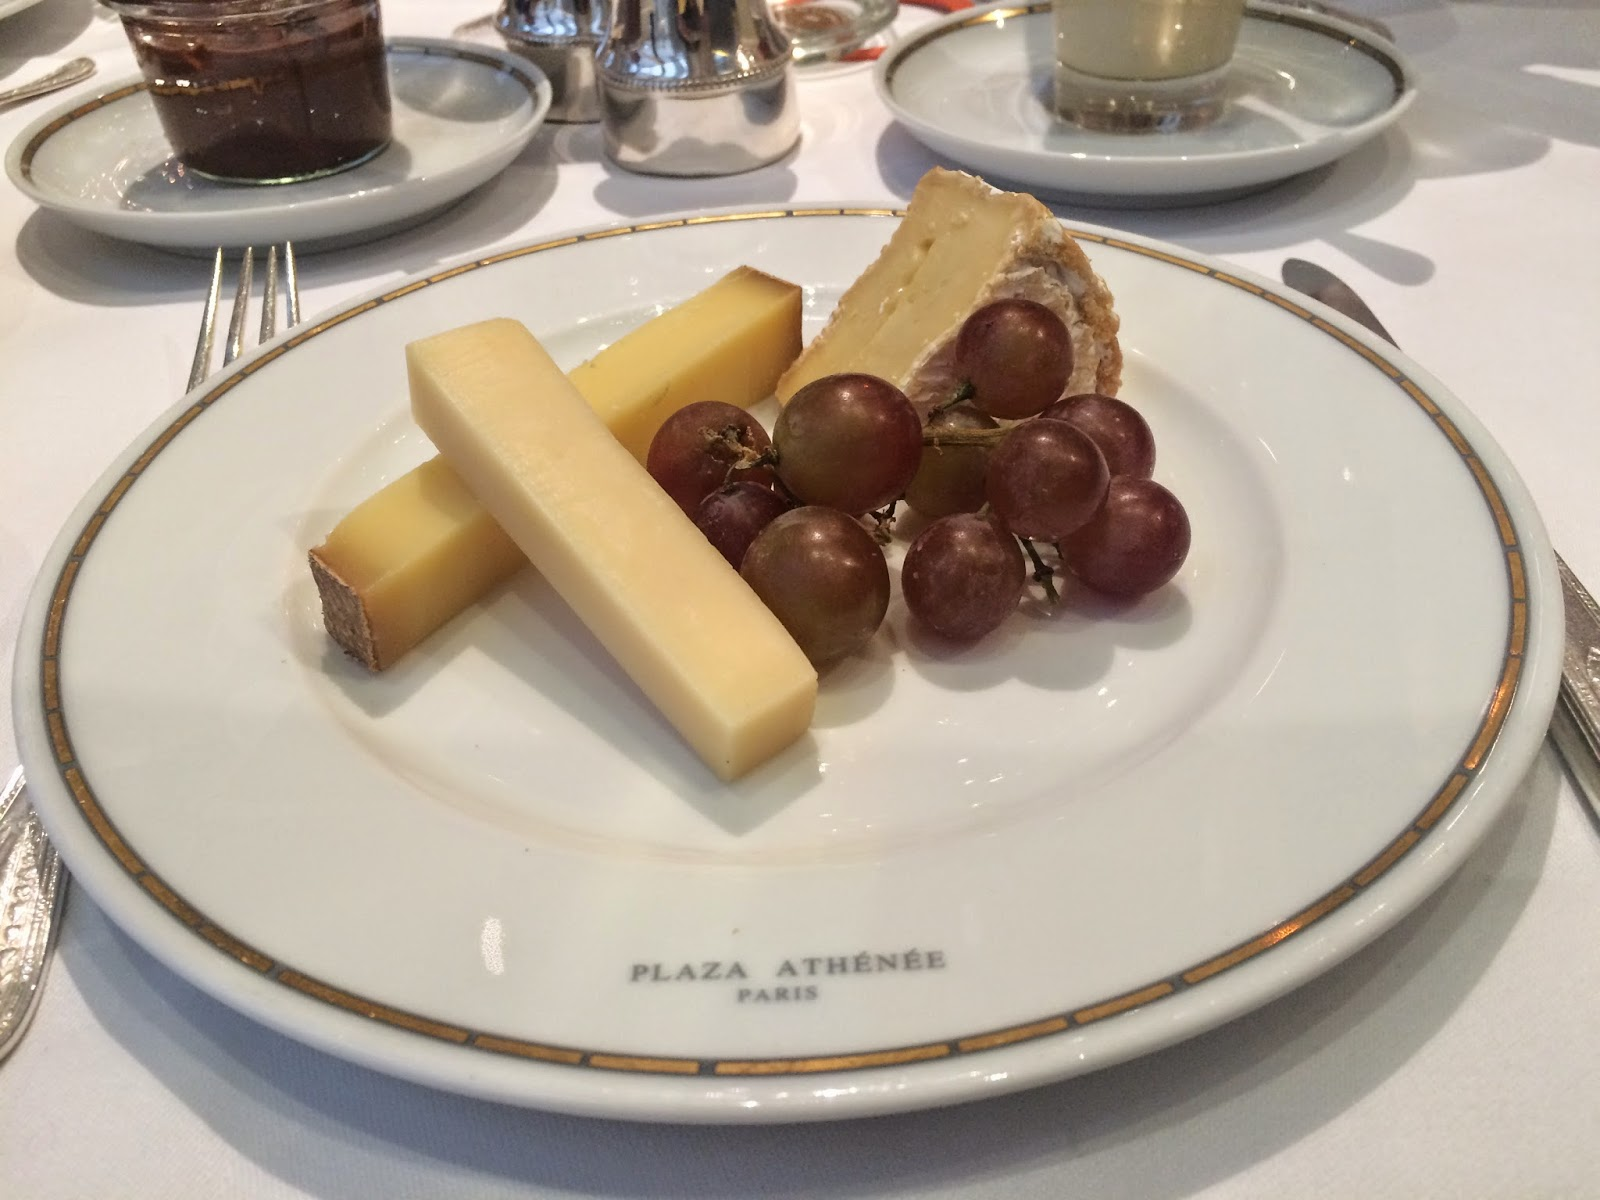 Cheese course at the Haute Couture Brunch, Alain Ducasse au Plaza Athénée, Paris